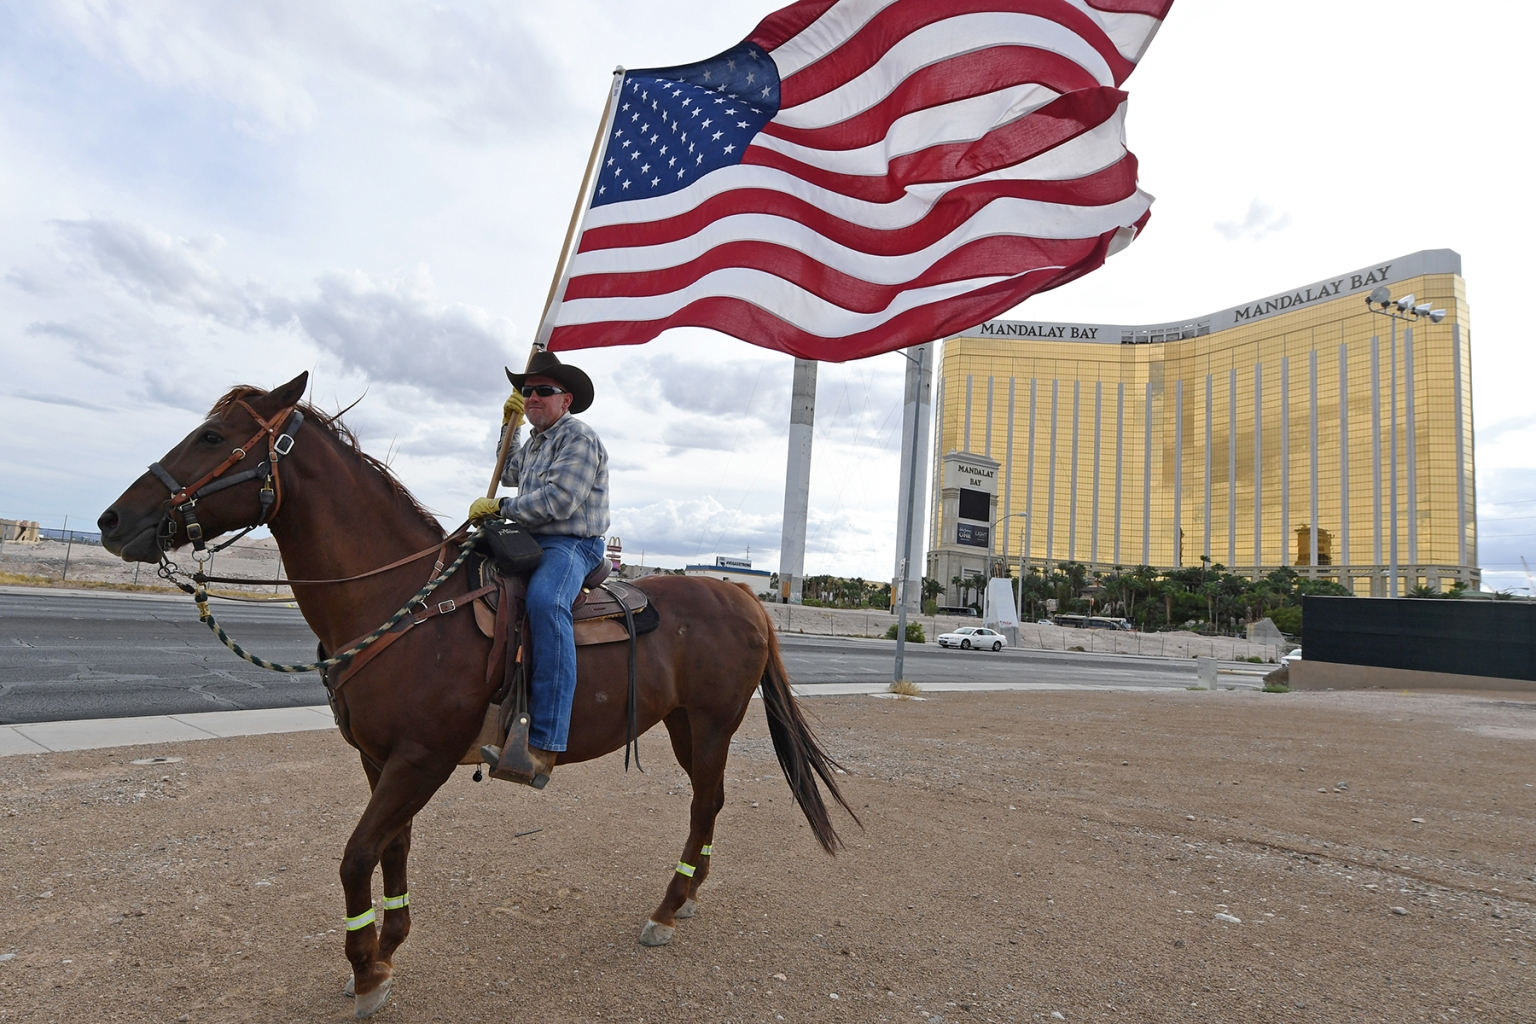 Rafael Sarabia holds an American flag as he rides his horse across from the Mandalay Bay Resort and Casino in Las Vegas, Nevada, as a tribute to the 58 people killed in last year's mass shooting at the site on Oct. 1. Ethan Miller/Getty Images